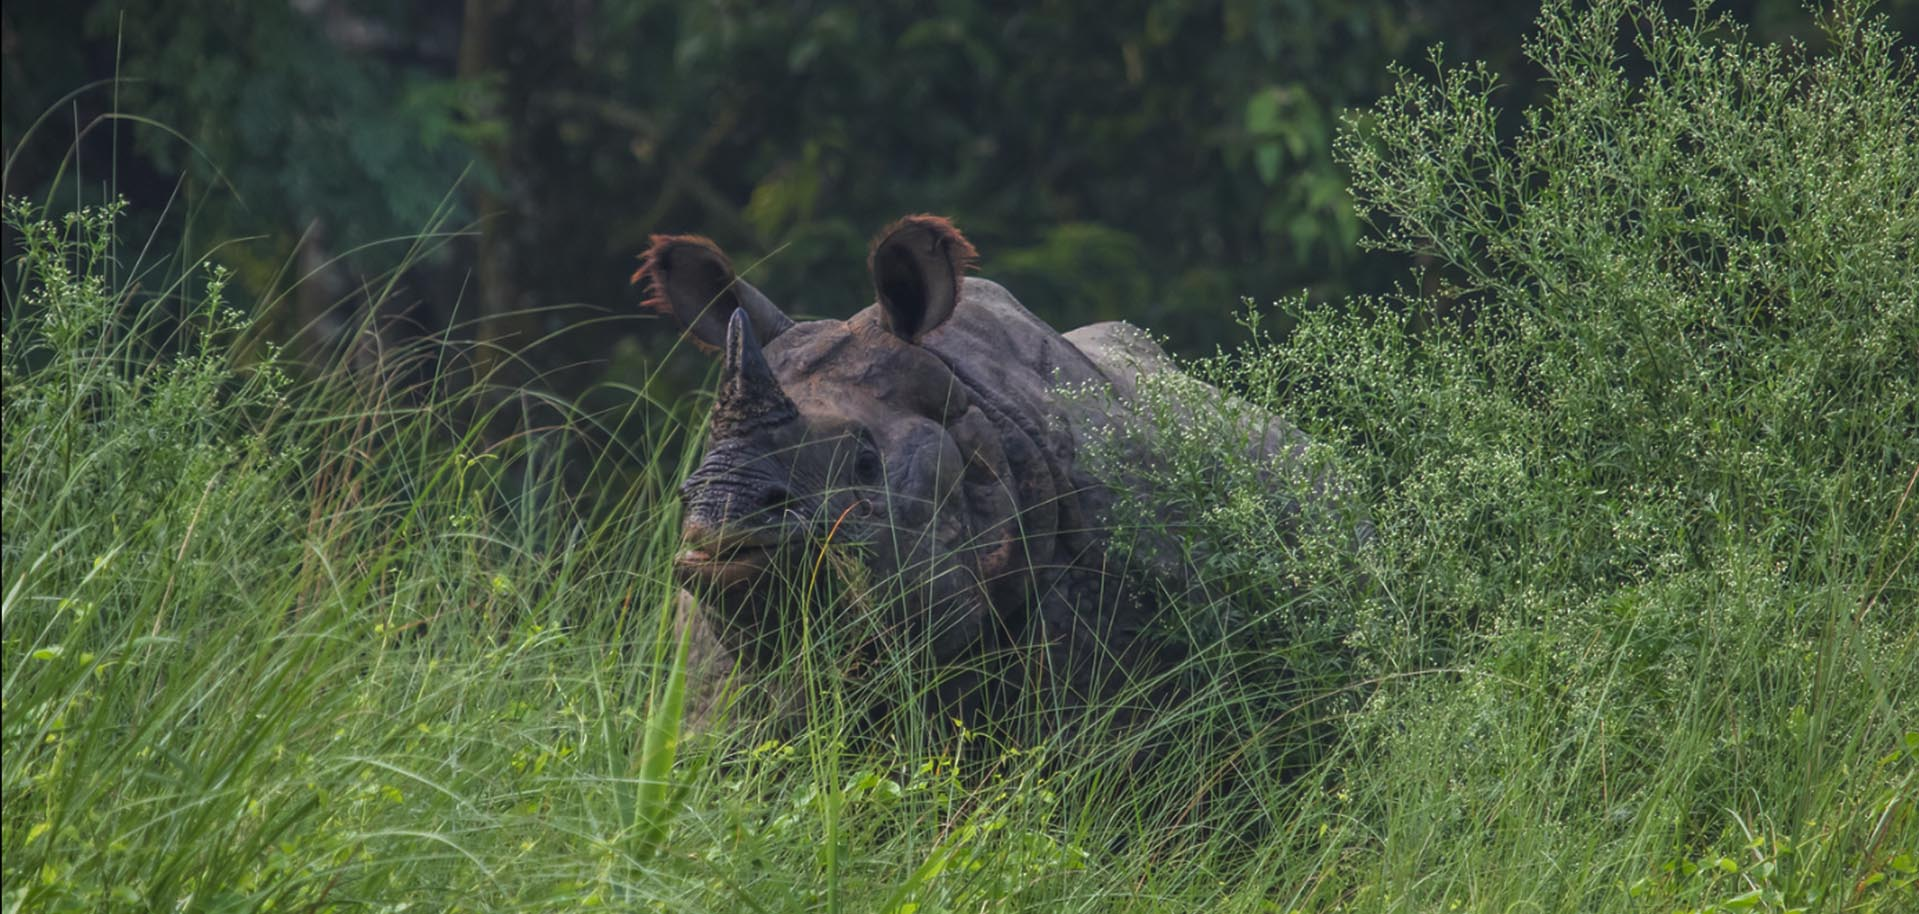 One Horned Rhino spotted during Chitwan Jungle Safari